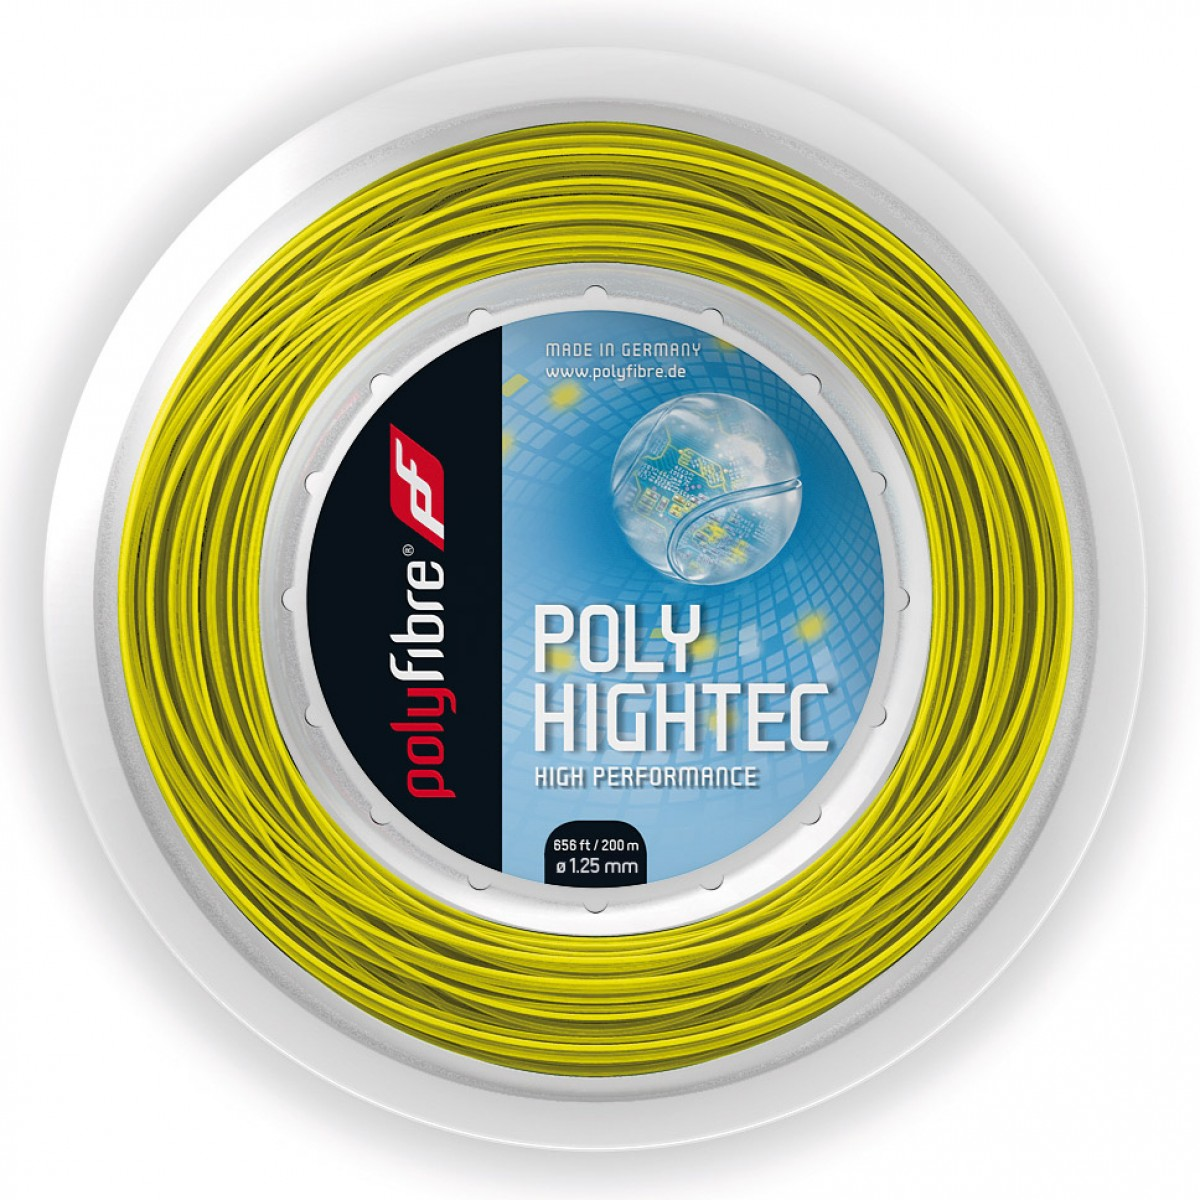 BOBINE POLYFIBRE HIGHTEC (200 METRES)